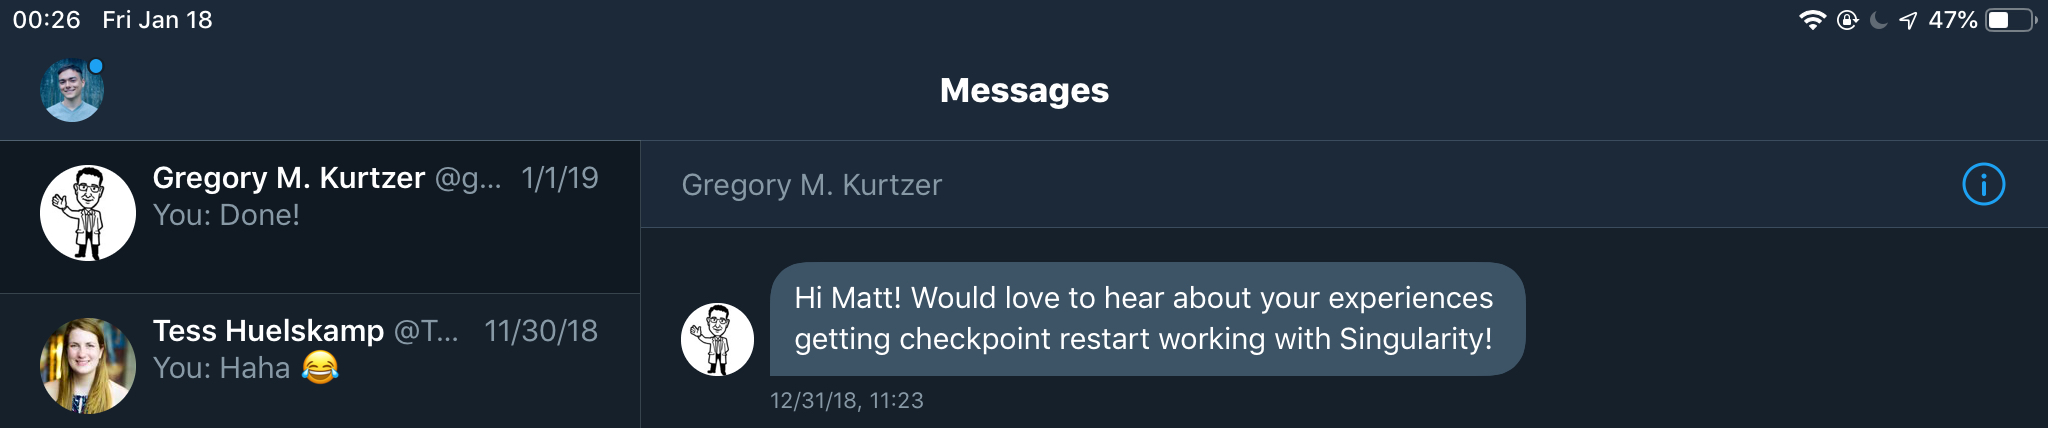 A direct message from Gregory Kurtzer.